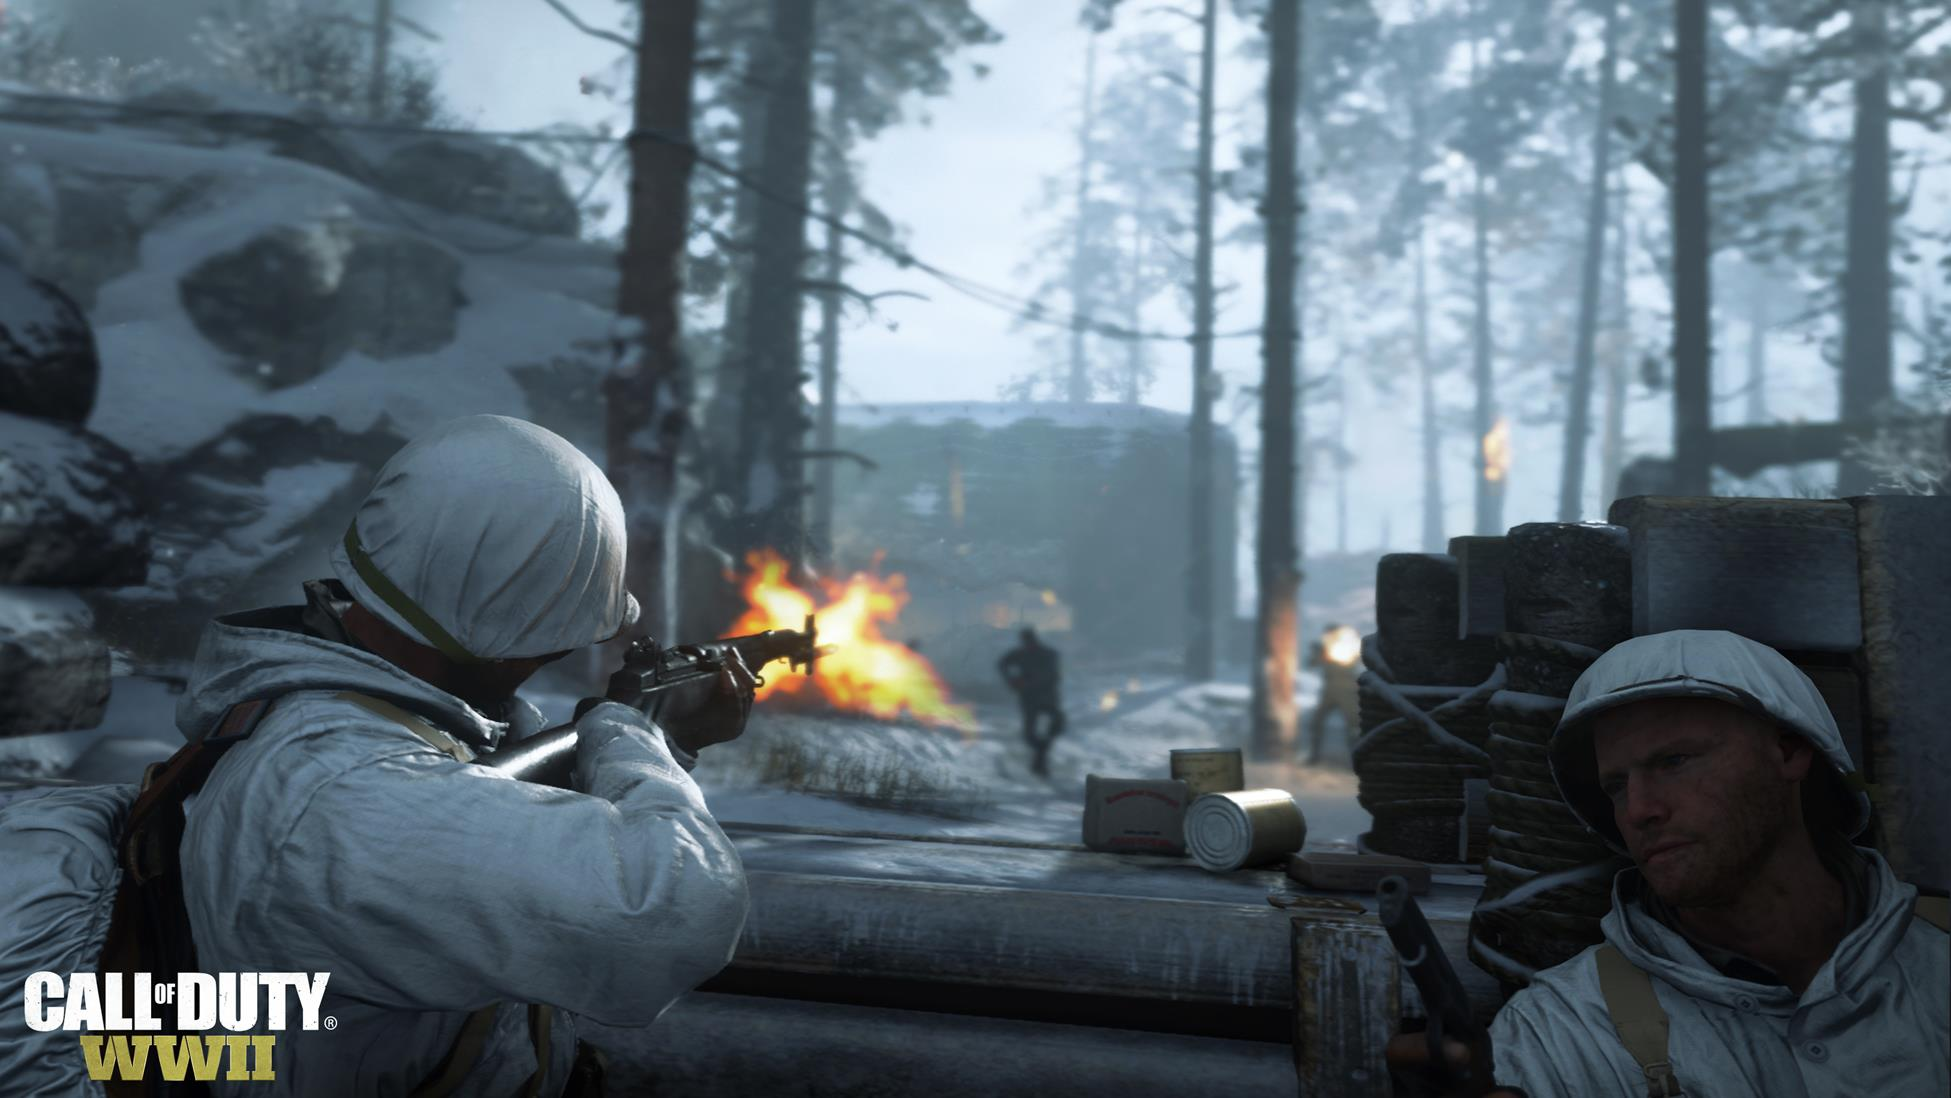 call-of-duty-wwii (1)